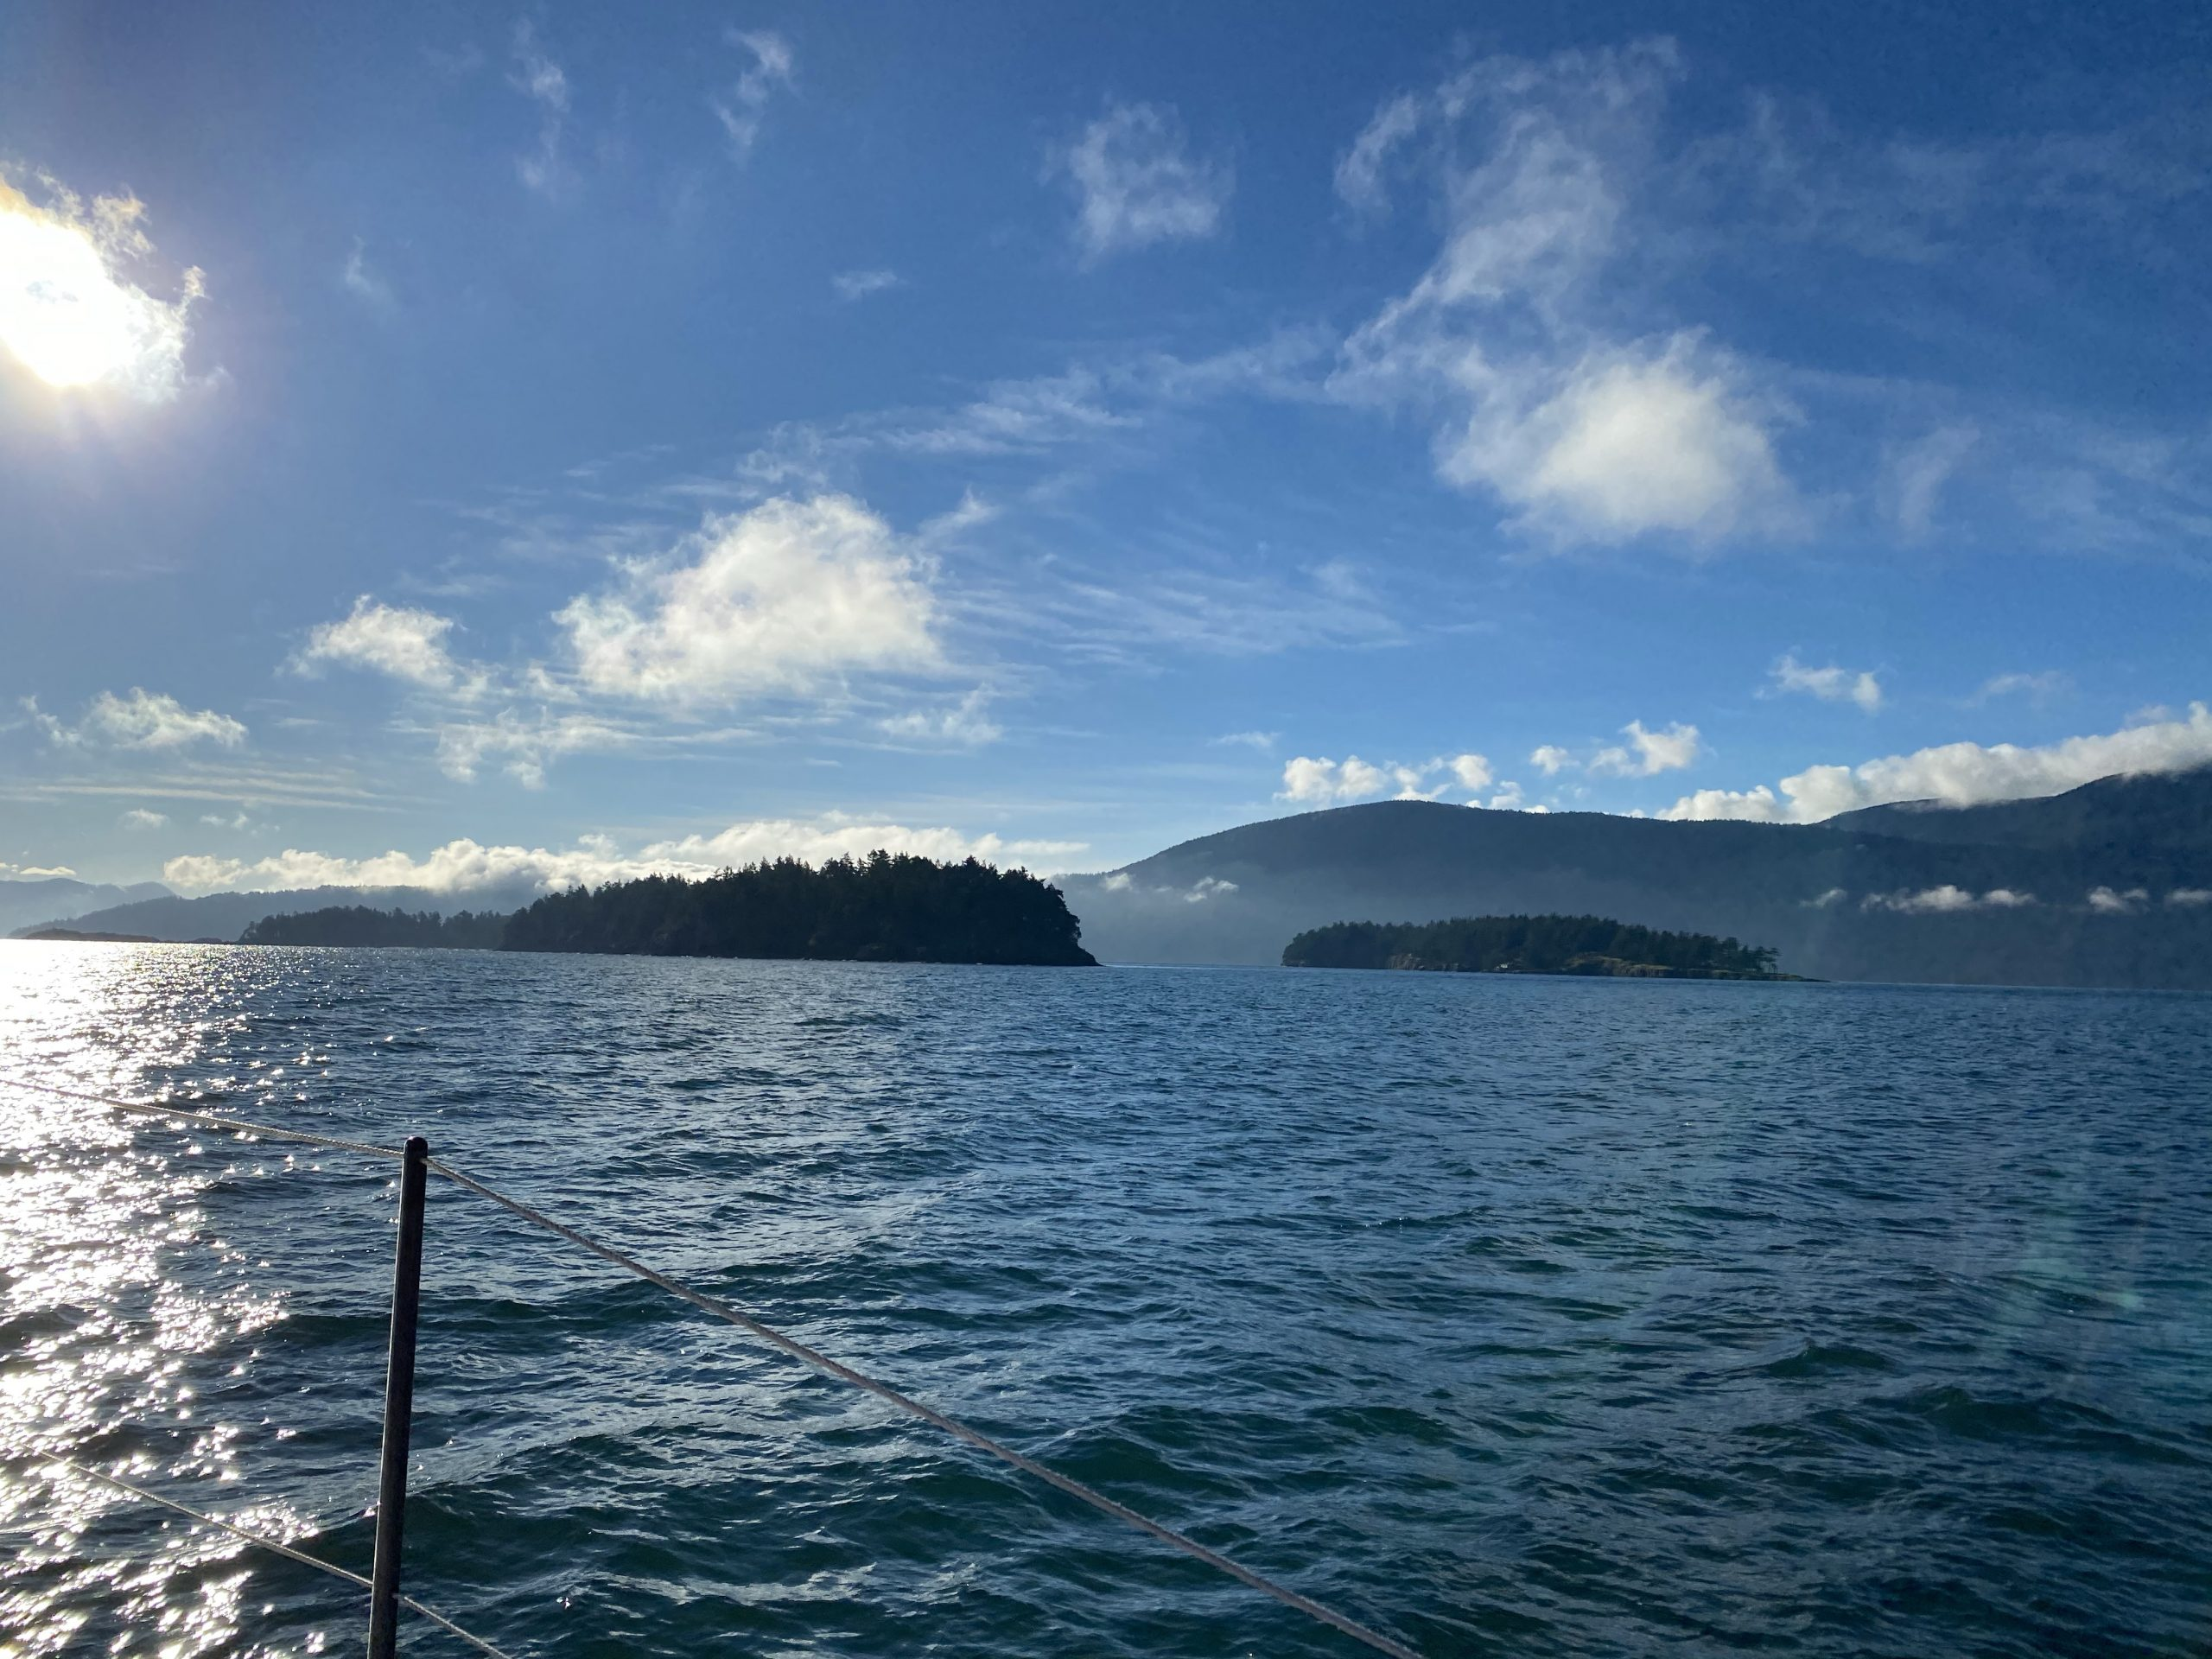 Orcas Island, the Barnes islands, and the Sisters